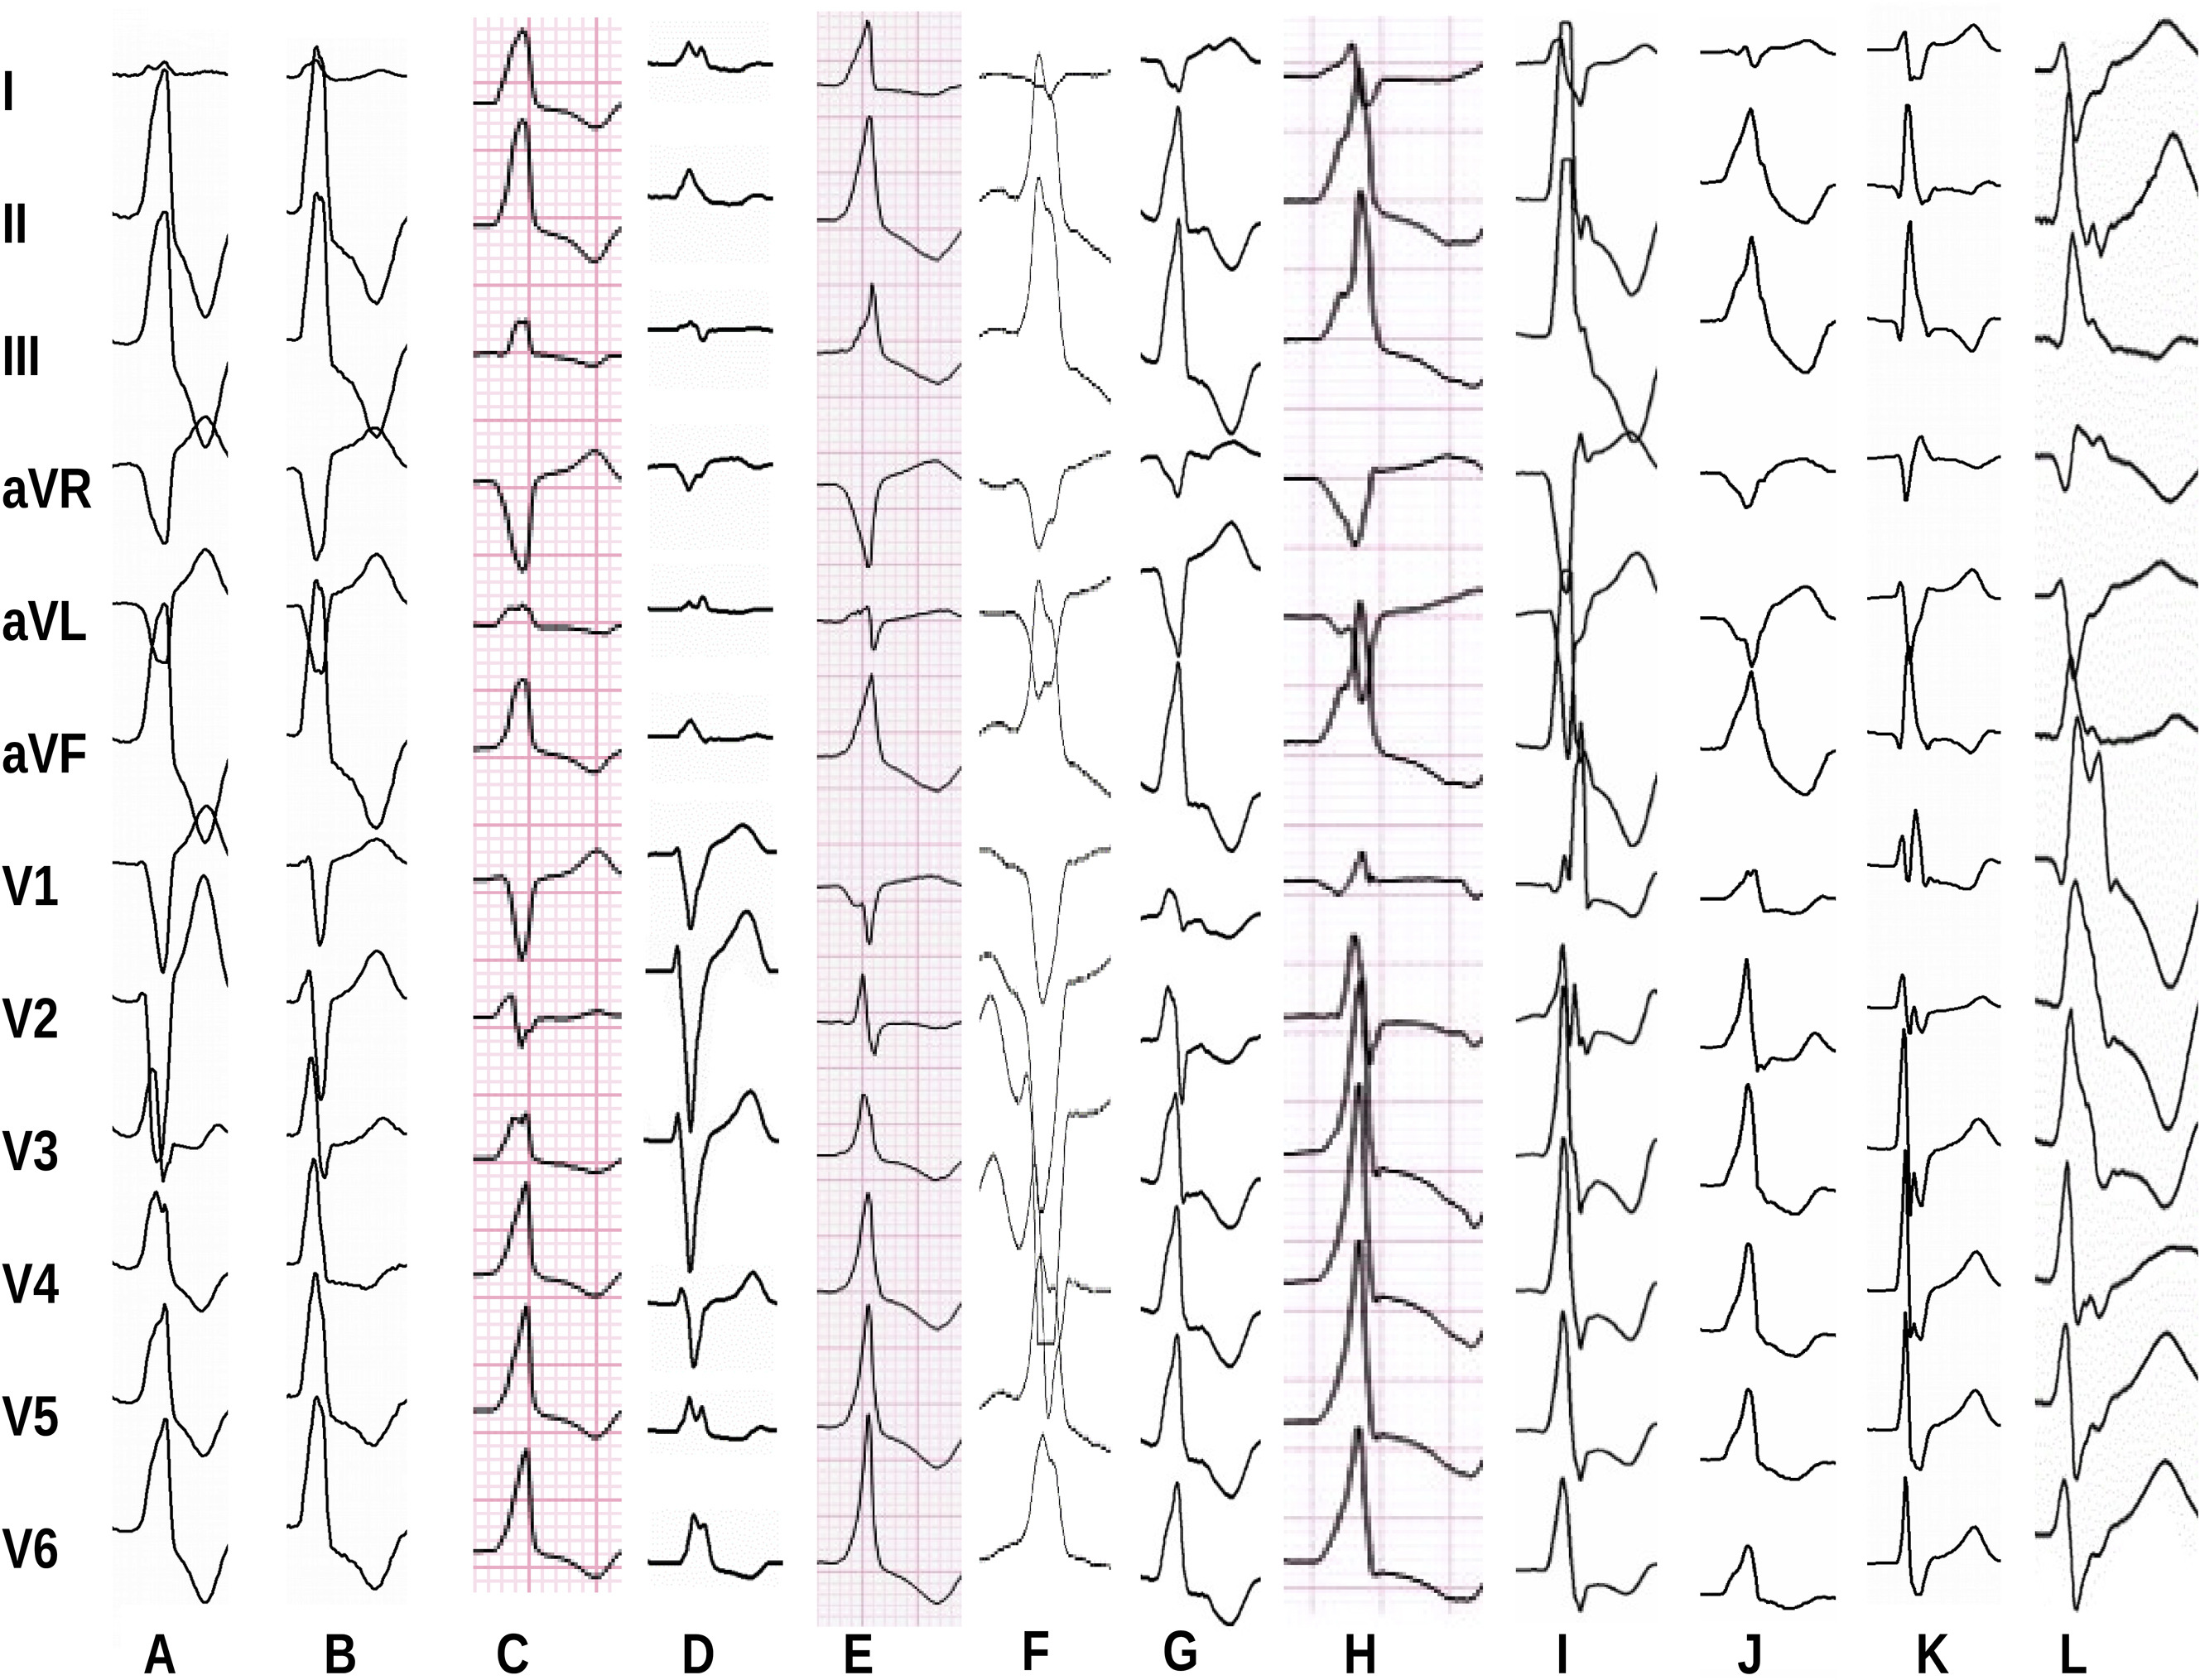 How To Use The 12 Lead Ecg To Predict The Site Of Origin